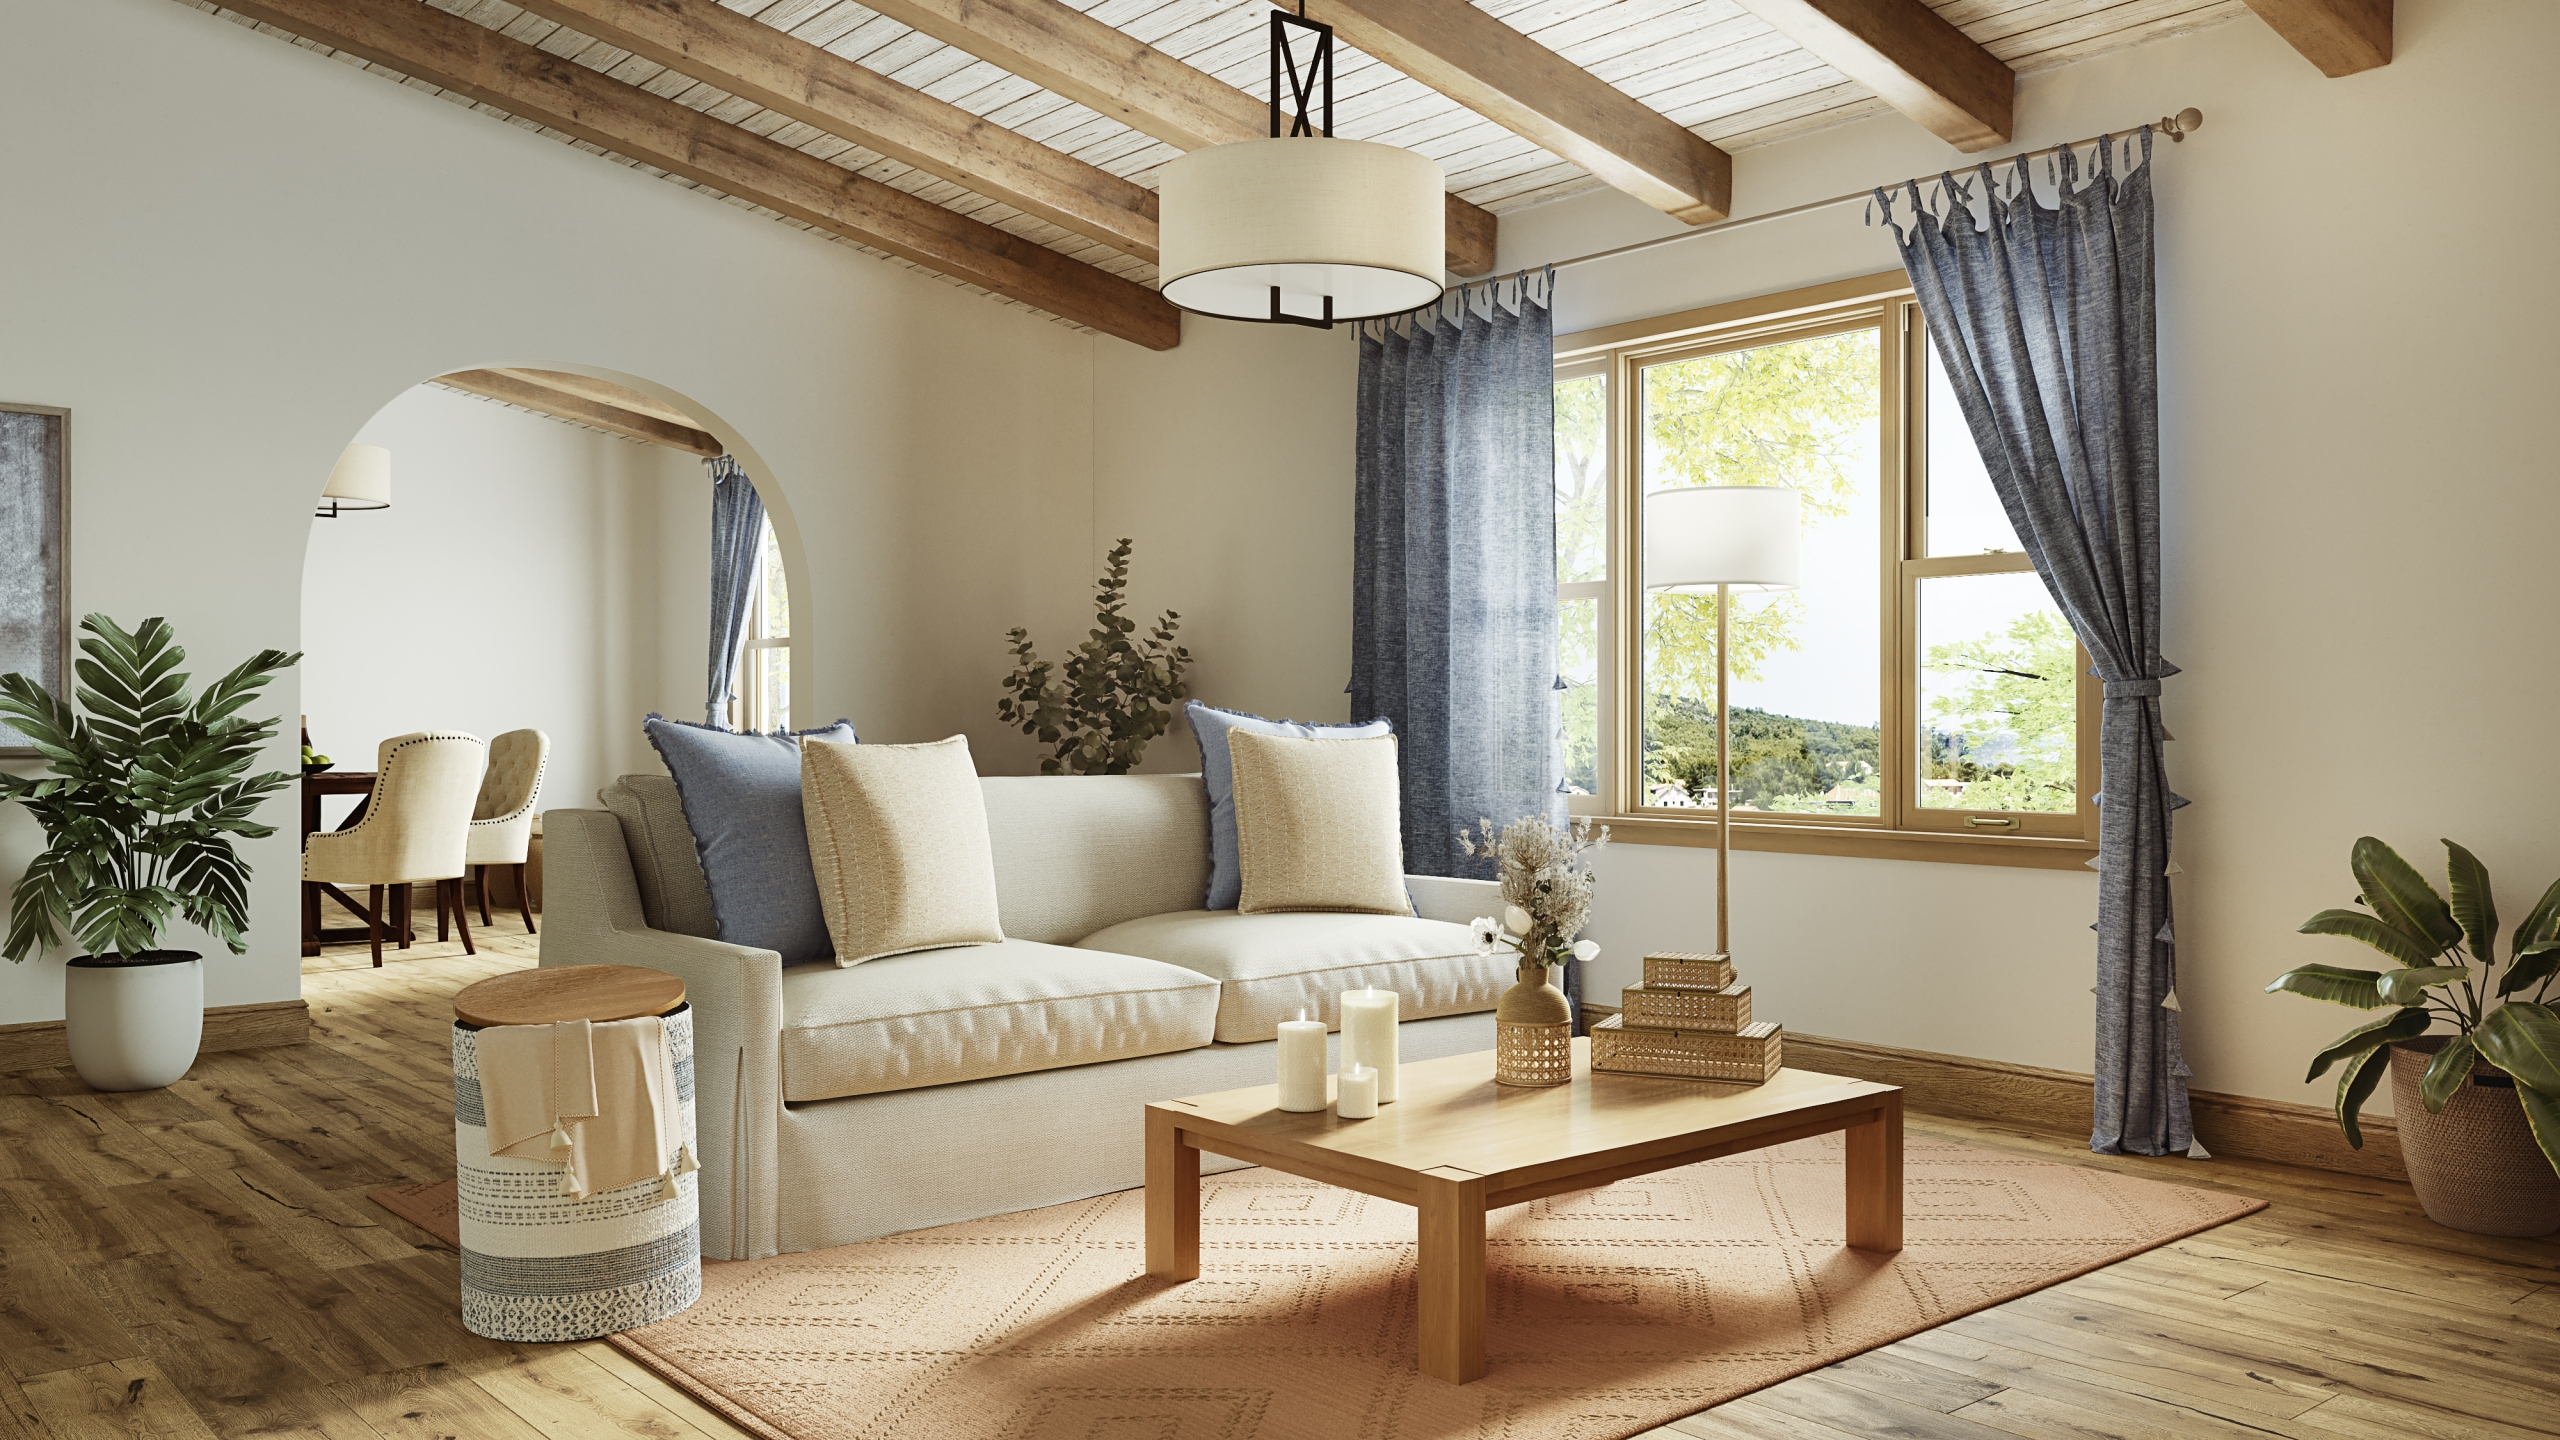 Anaya Furniture and Decor Product Images